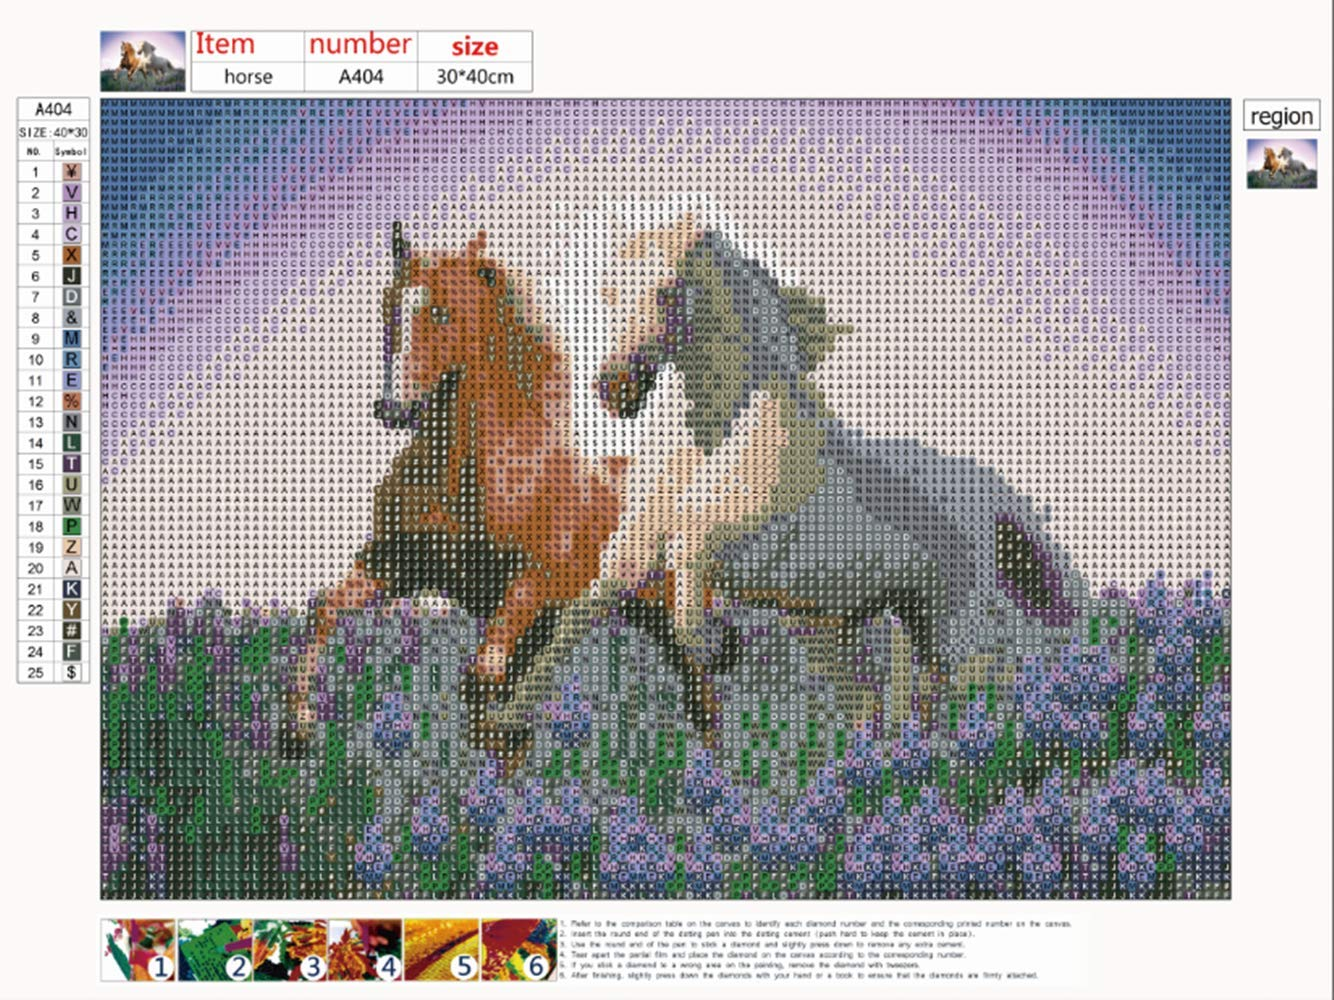 DIY 5D Diamond Painting by Number Kit,2 Horses 5d Diamond Art Rhinestone Embroidery Cross Stitch Kits Supply Arts Craft Canvas Wall Decor Stickers 16x12 inches